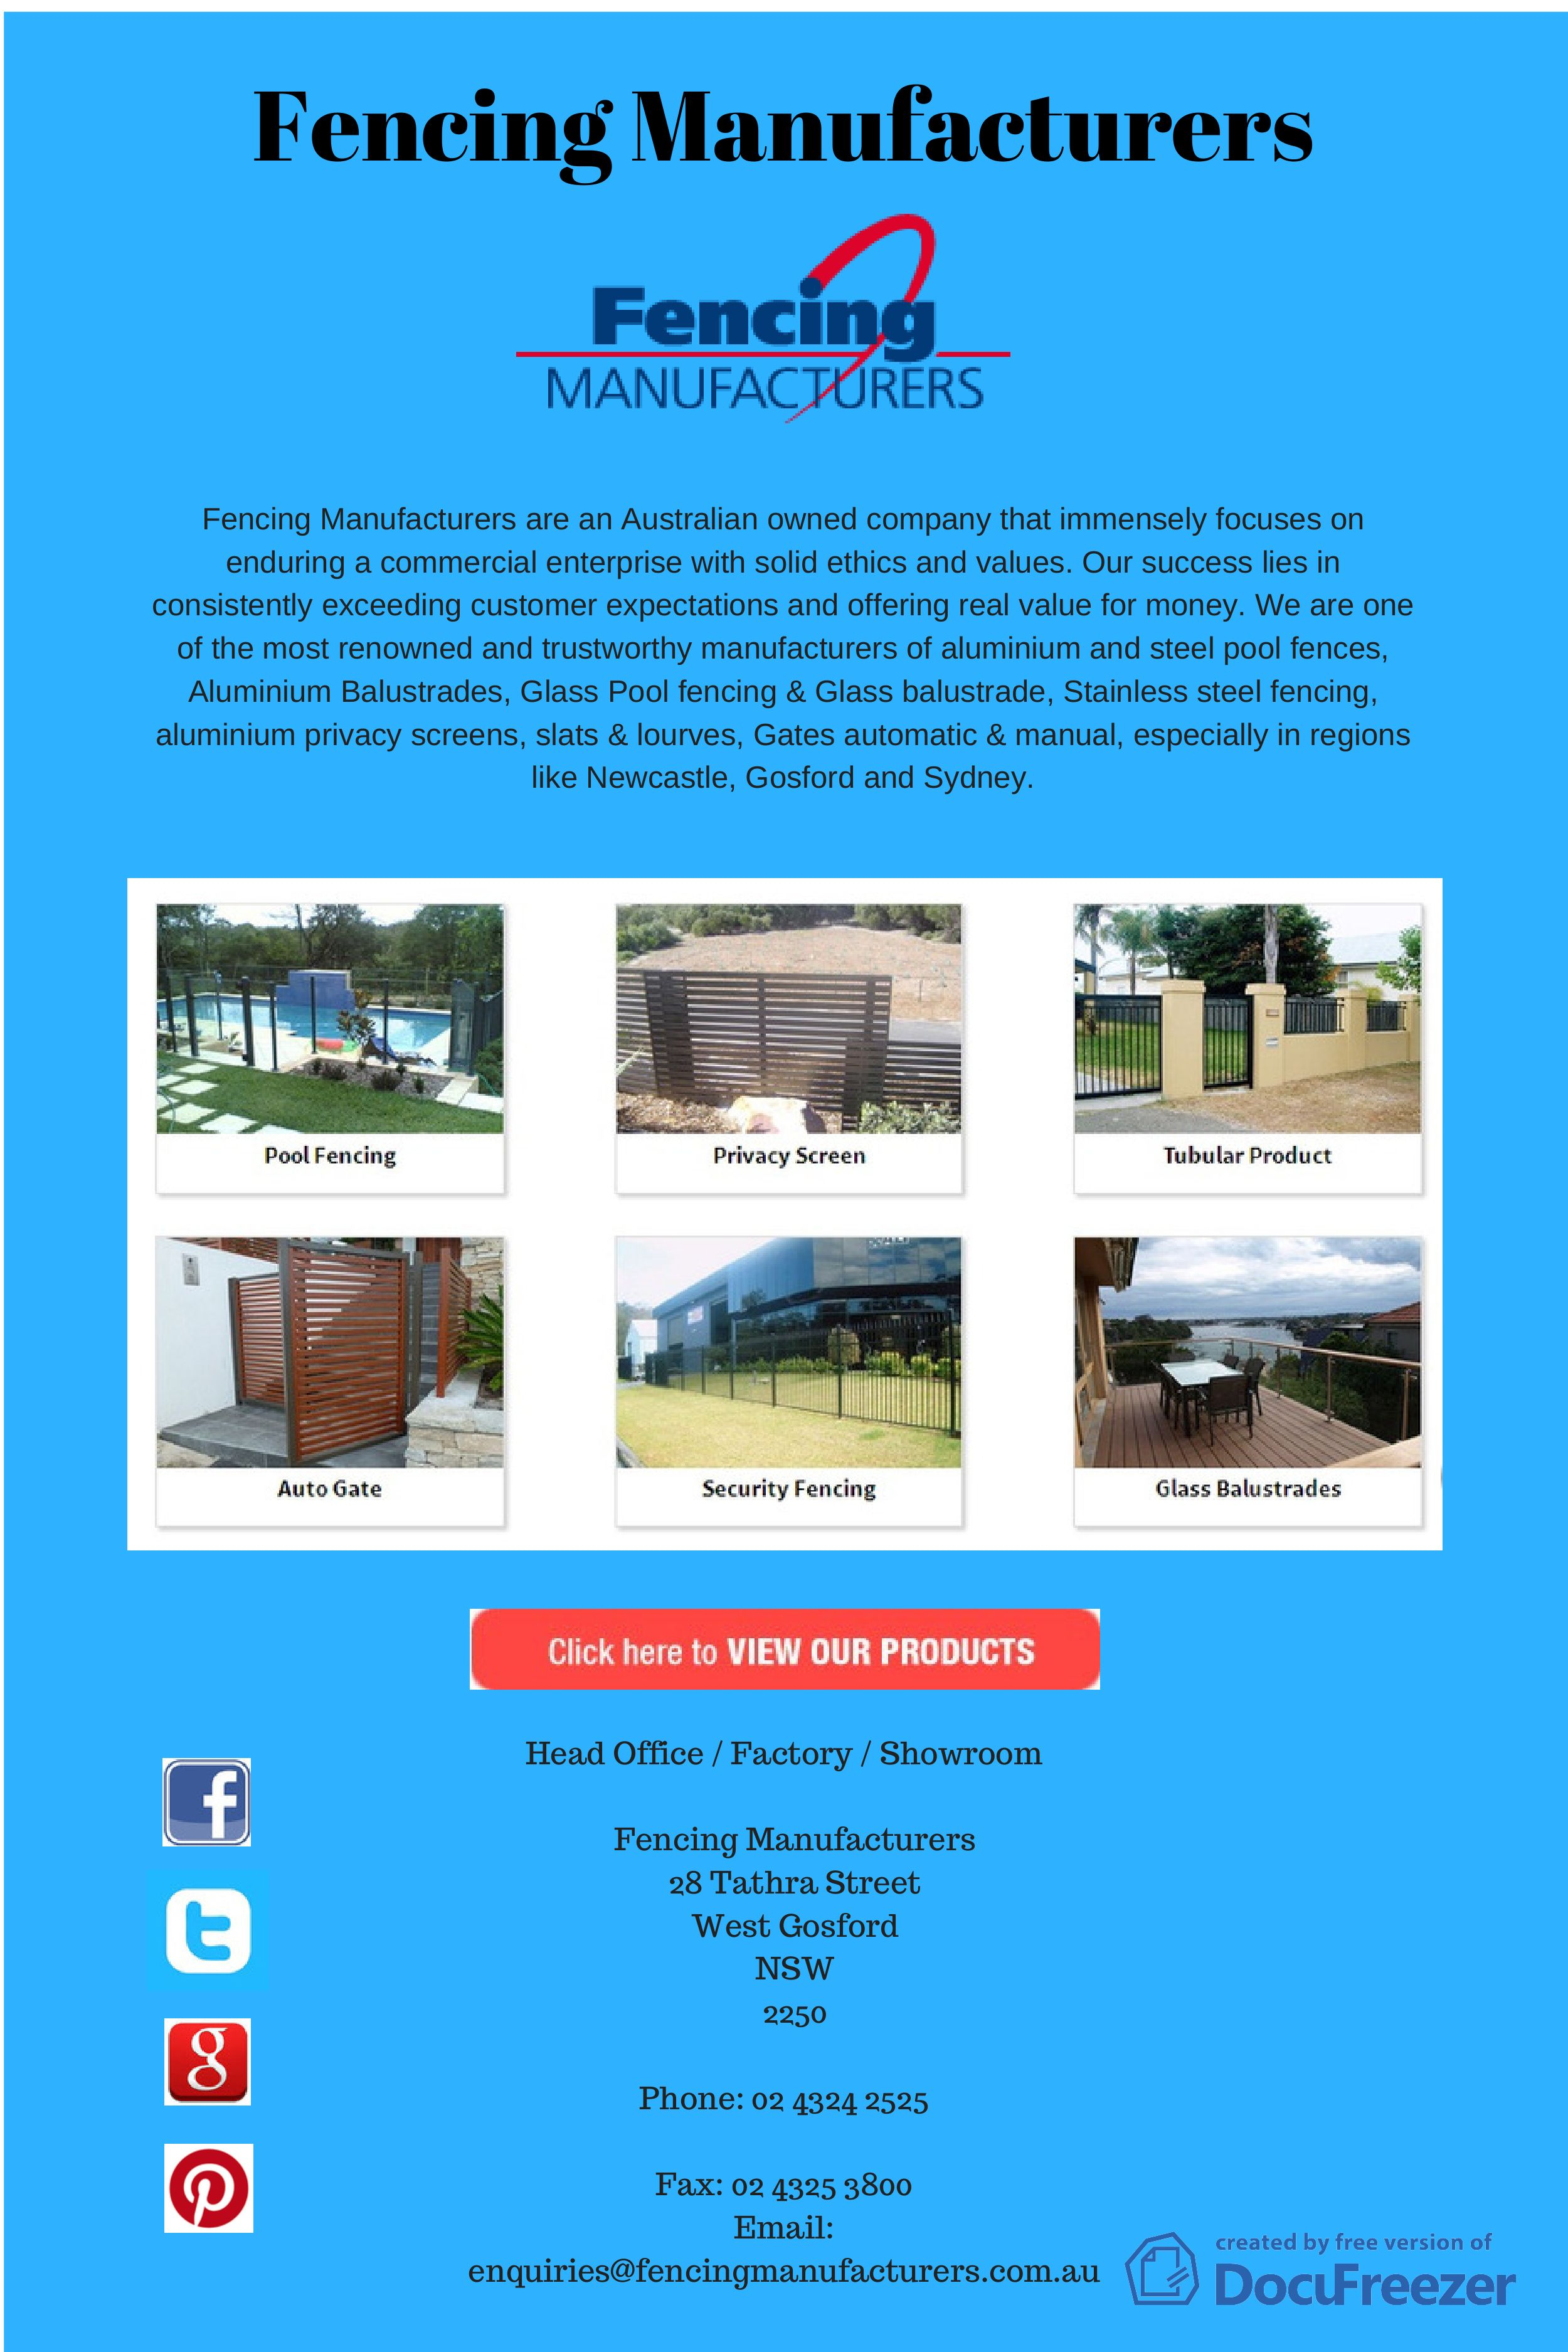 Pin By Fencing Manufacturers On Fencing Manufacturers Infographic Glass Pool Fencing Newcastle Fence